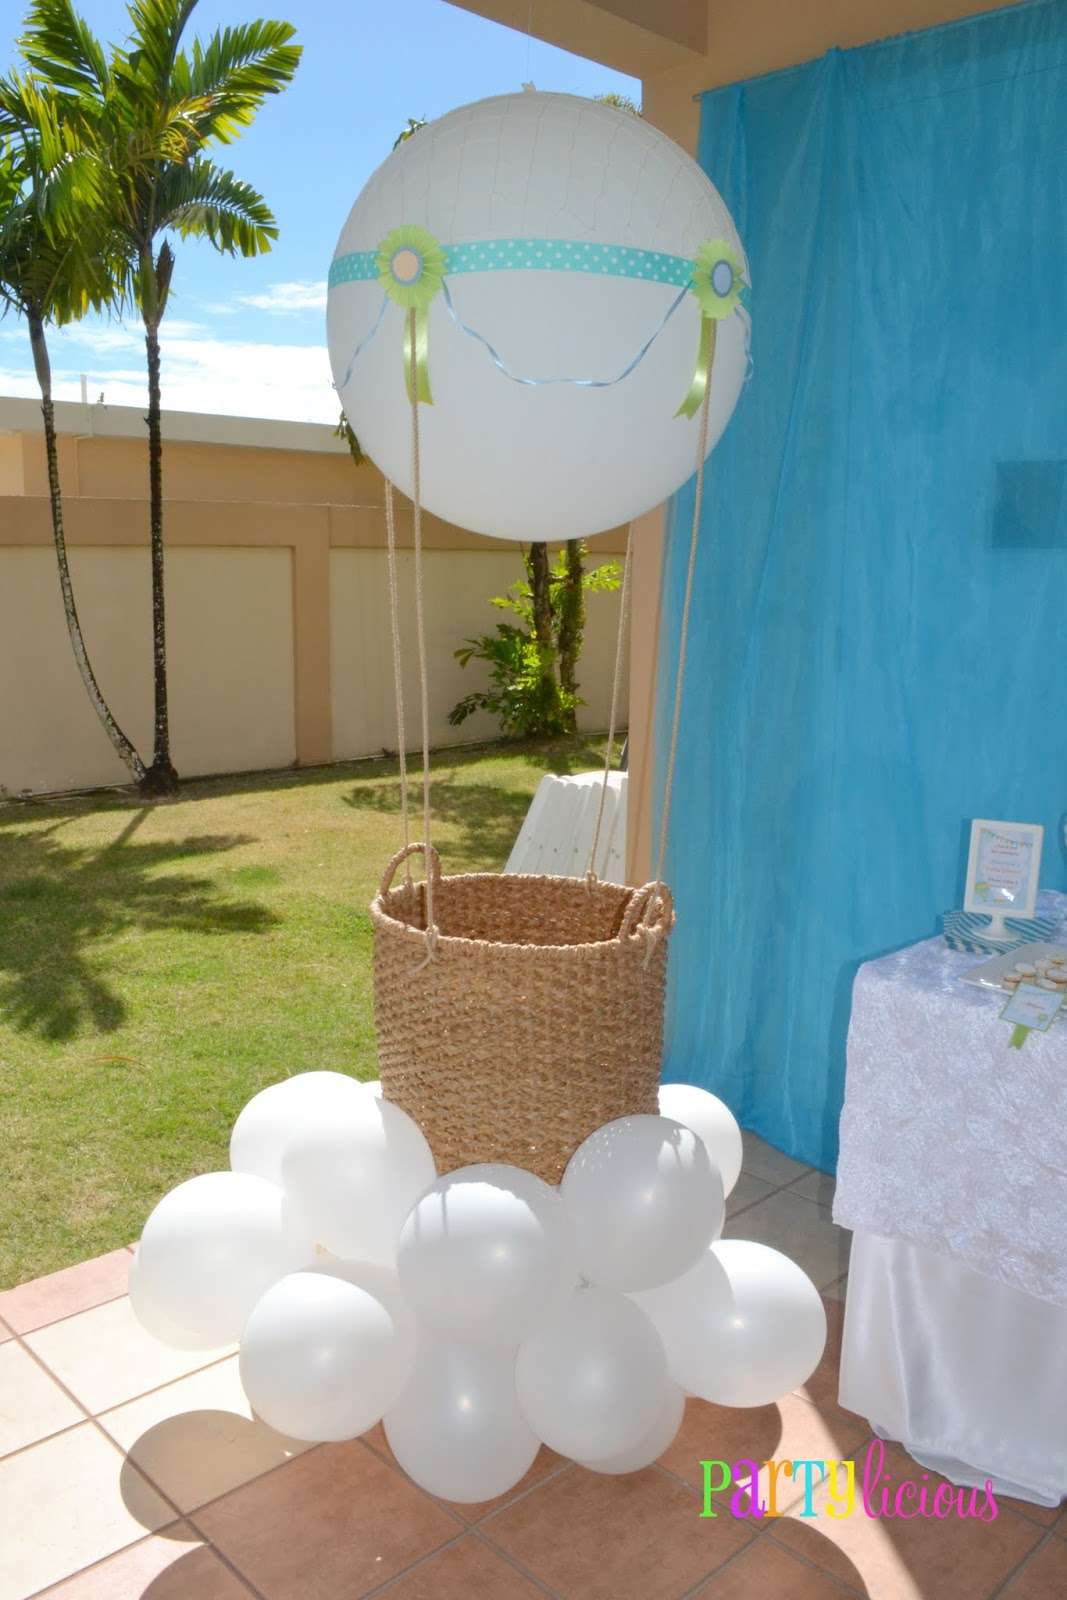 Partylicious events pr up up and away baby shower for Baby shower decoration ideas with balloons